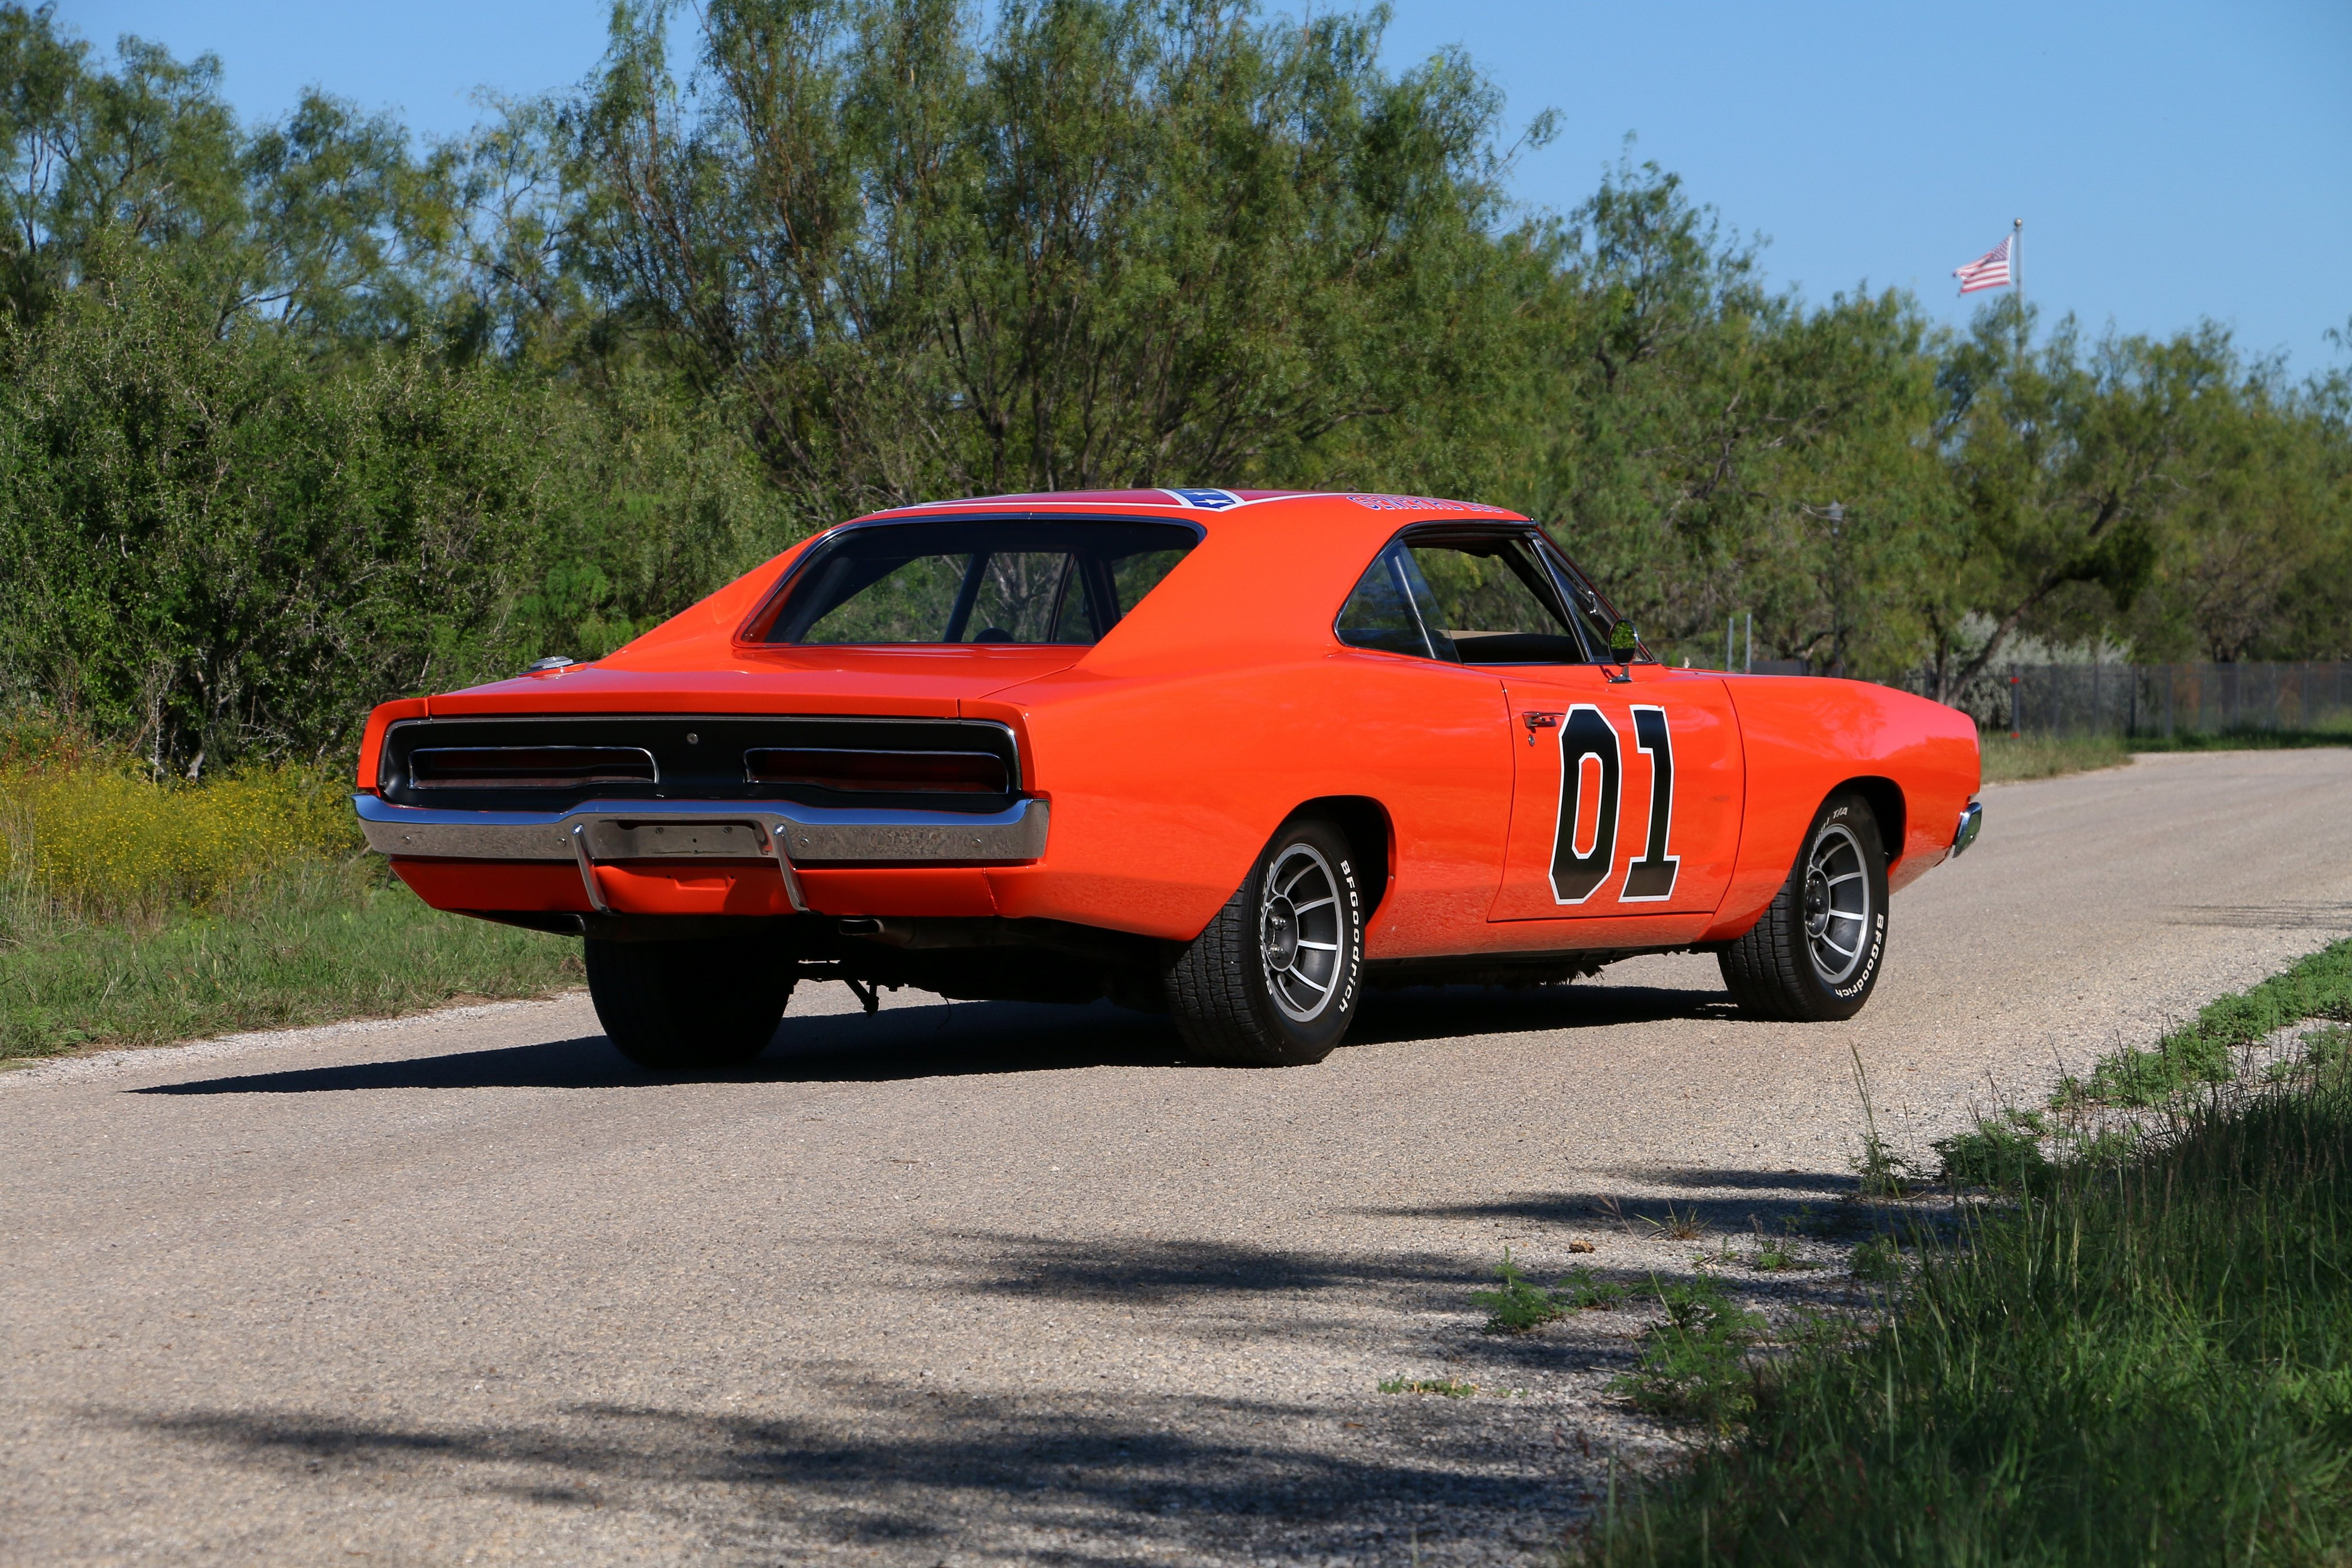 1969 Dodge Charger General Lee series mopar muscle classic custom hot rod rods wallpaper ...